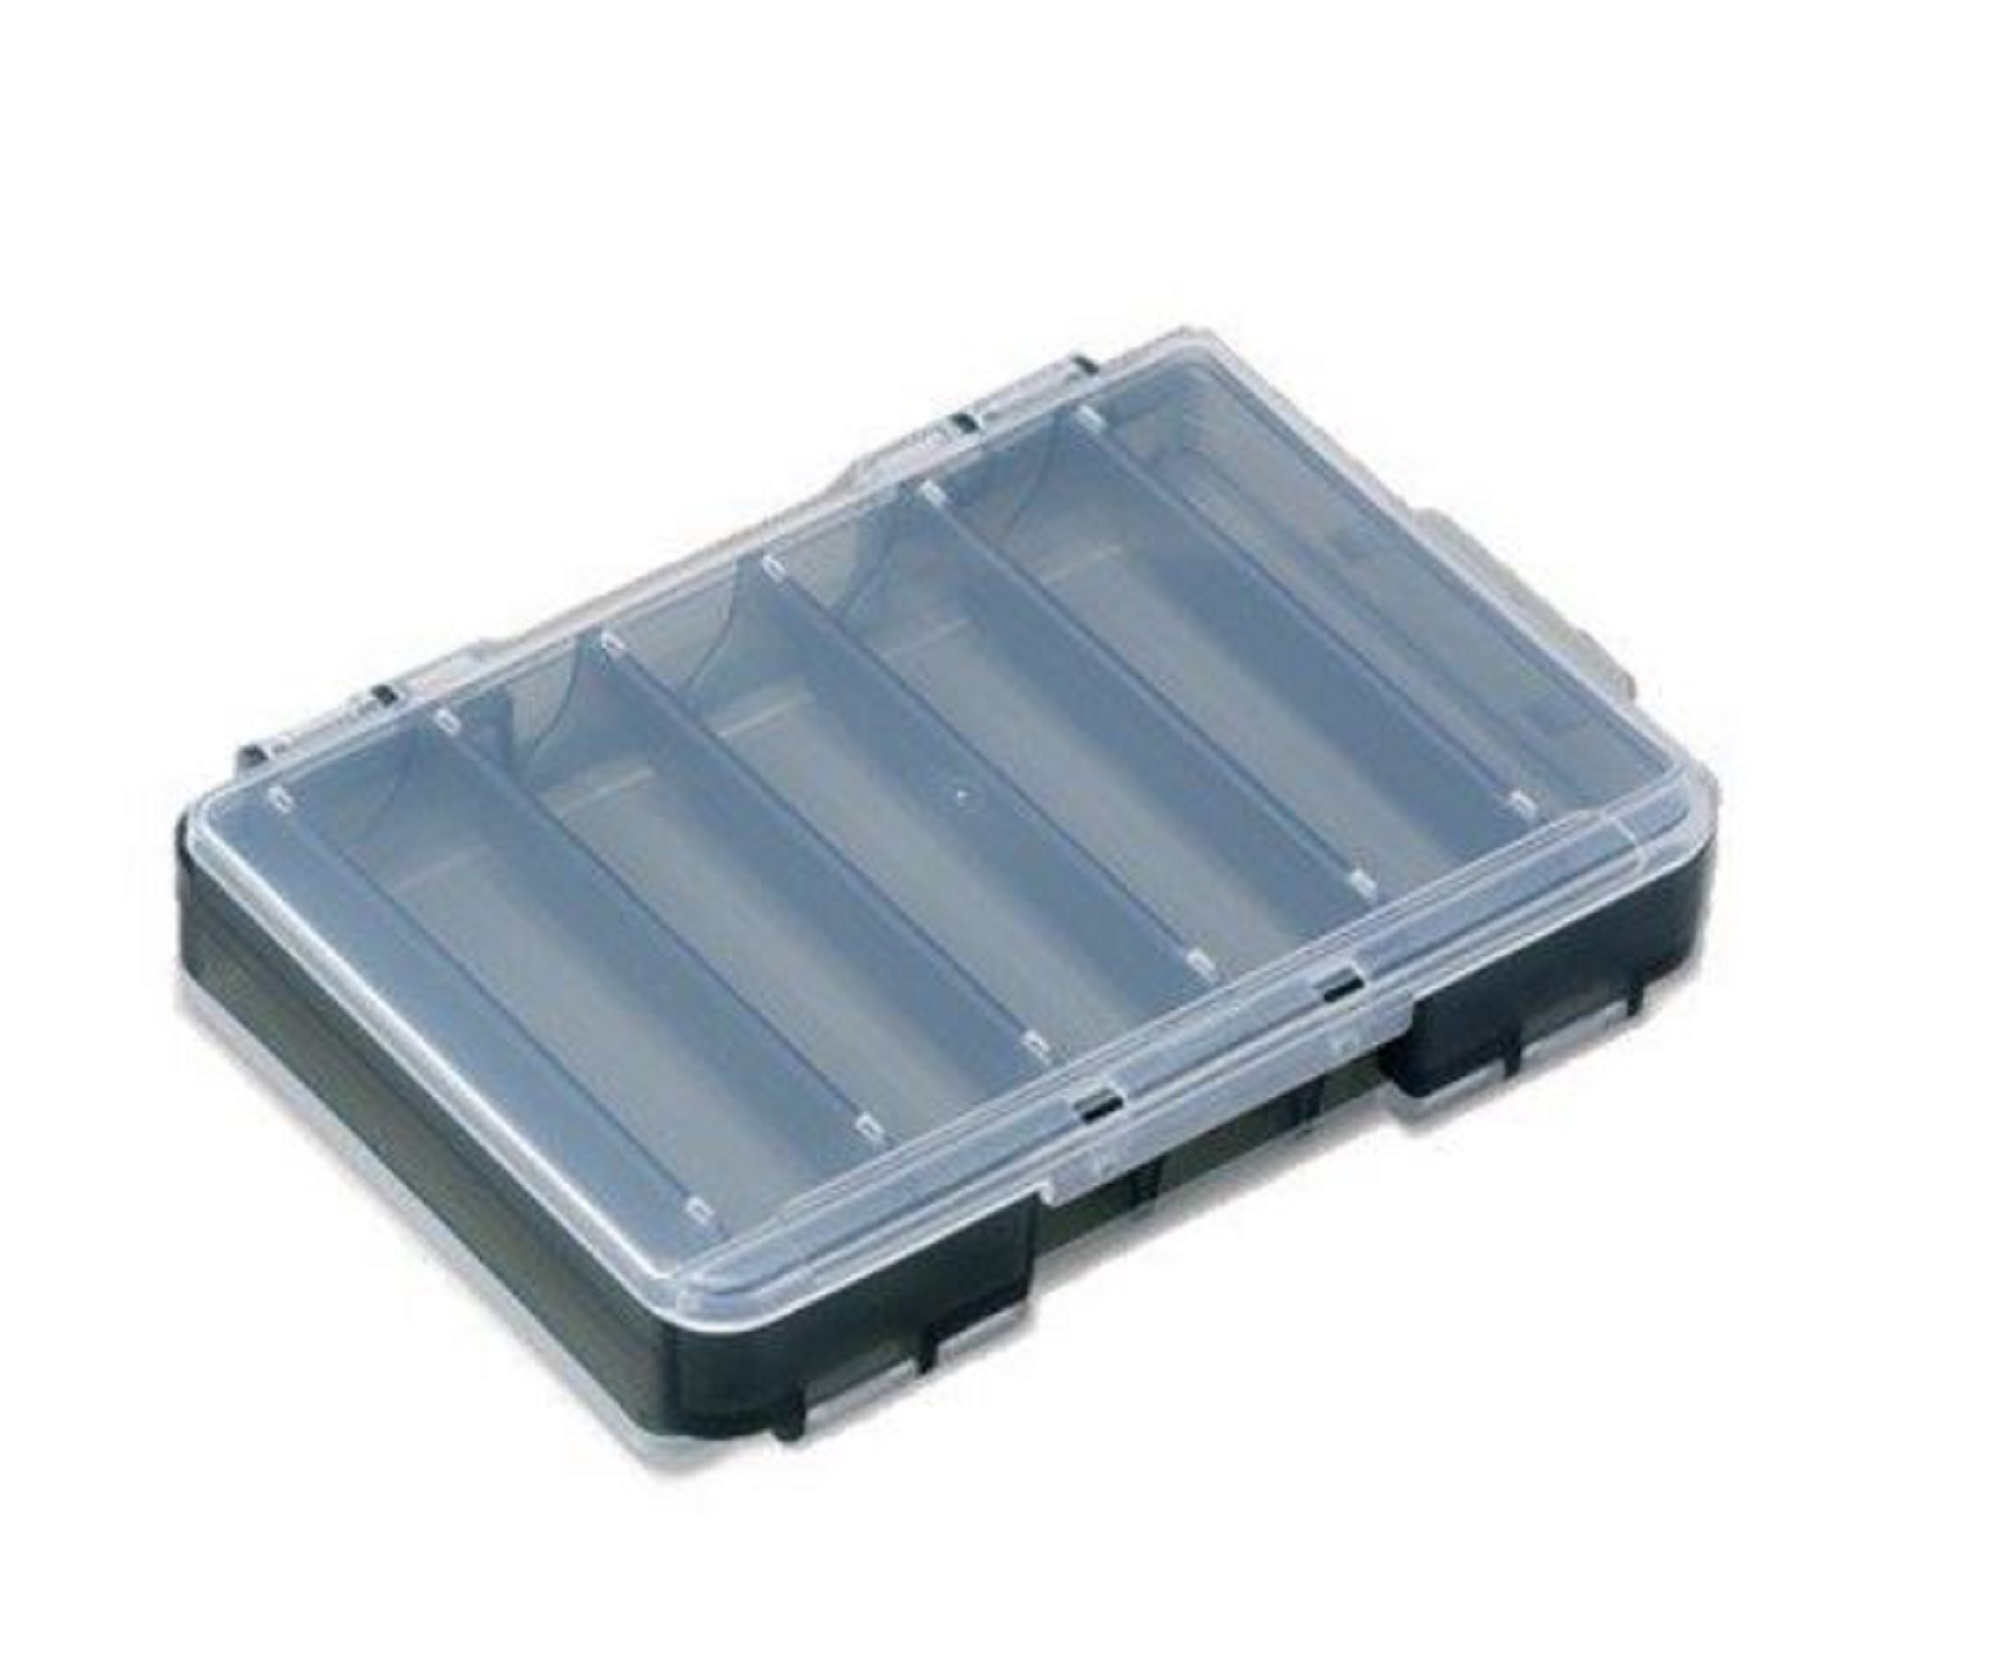 Duo Meiho Tackle Box Reversible D86 140 x 104 x 32 mm Black (3713)